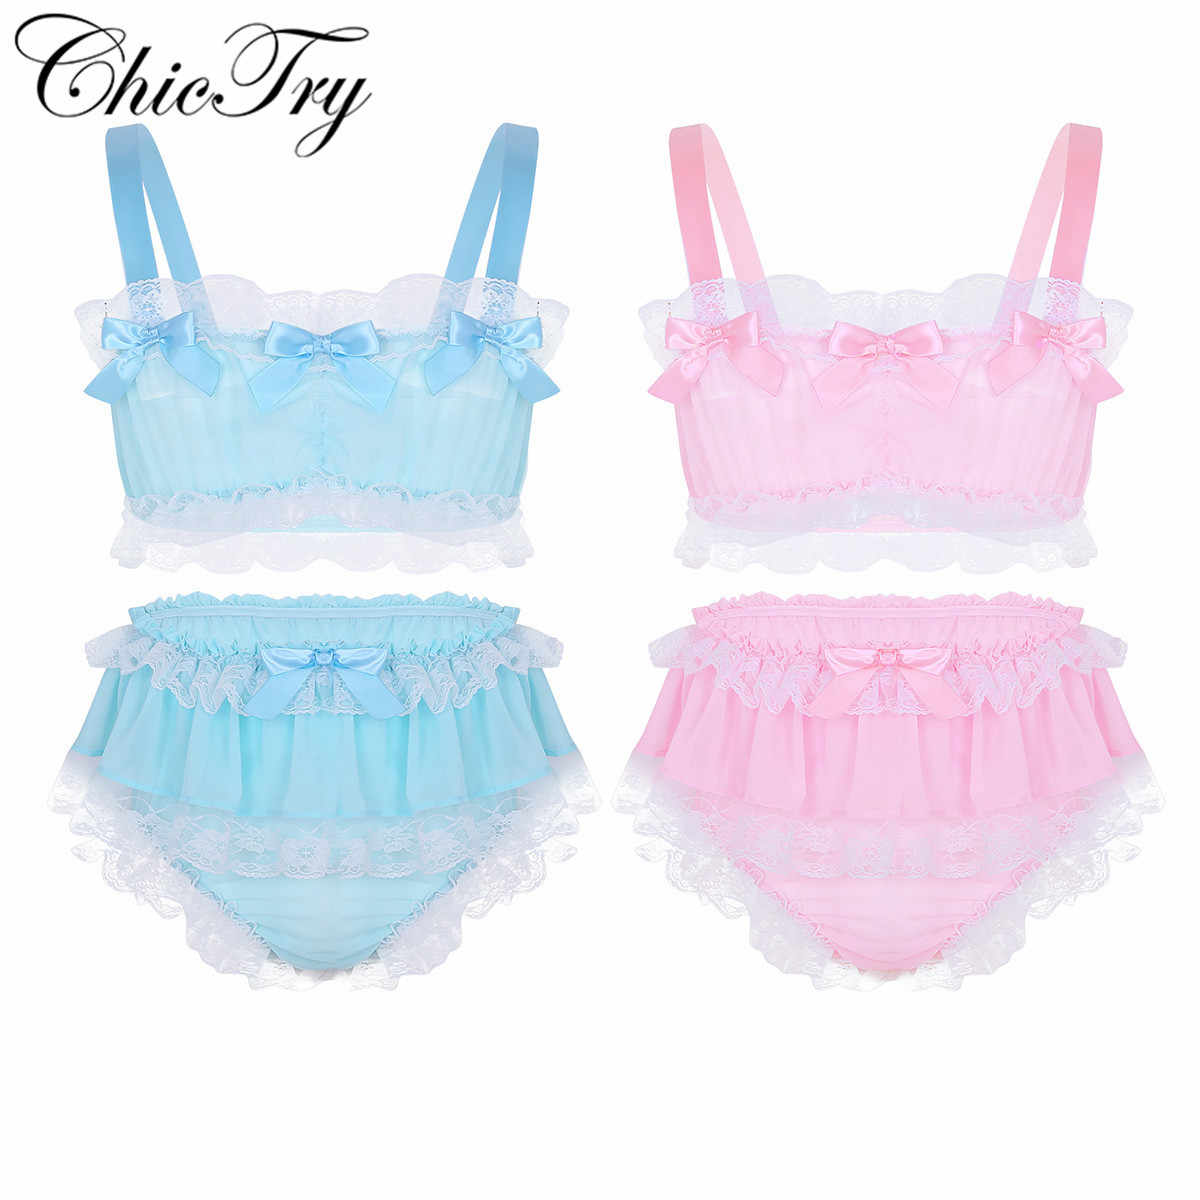 Gay Male Sexy Sissy Set Men Ruffled Lace Chiffon Lingerie Set Sleeveless  Crop Top with Skirted